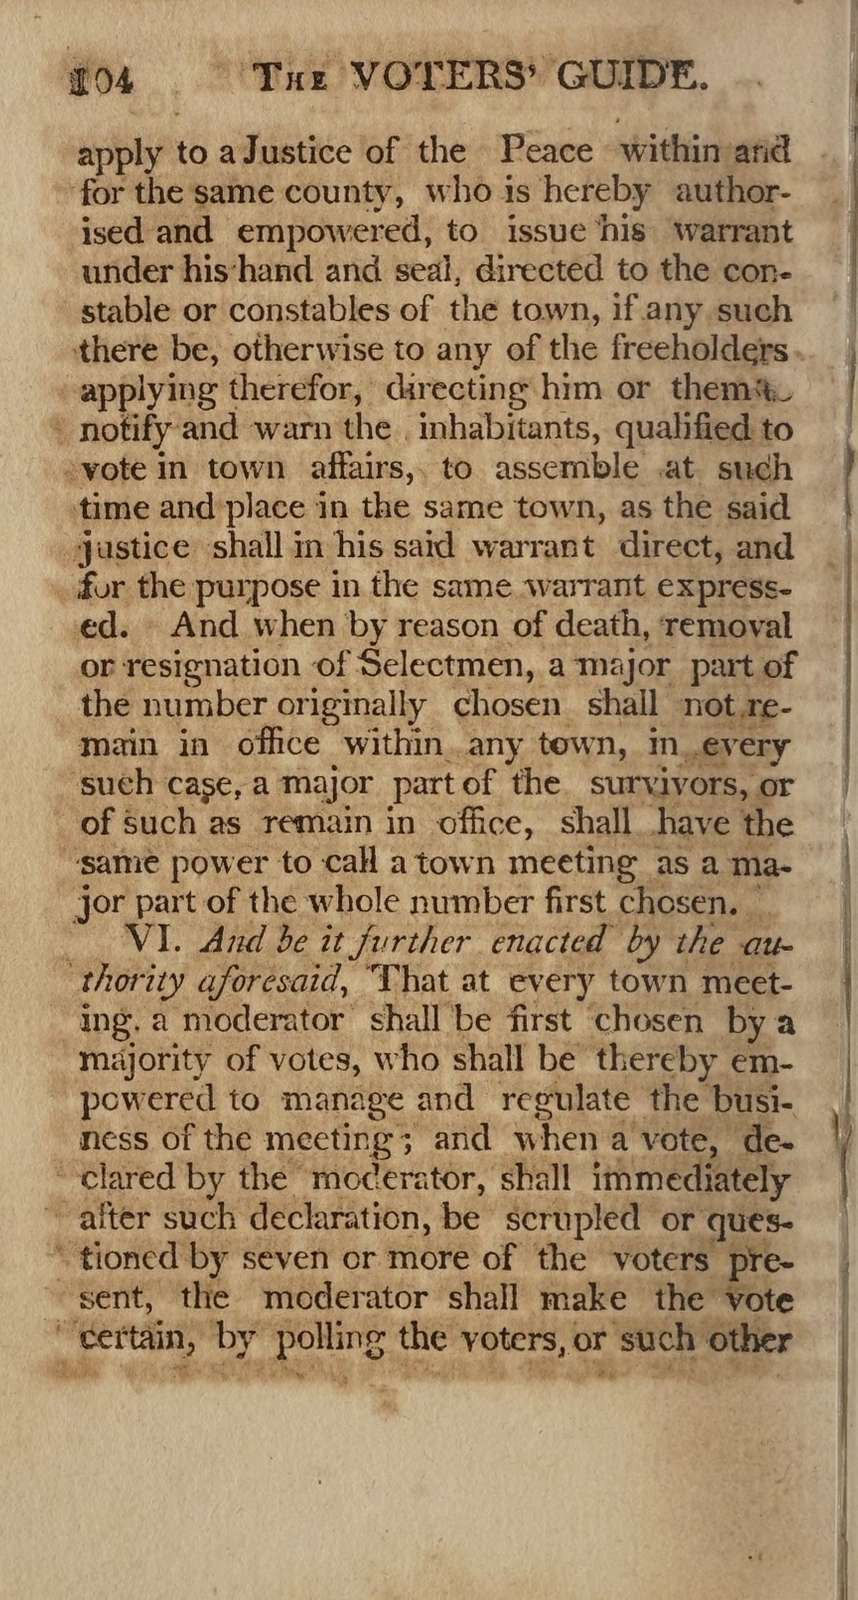 The voters' guide: or, The power, duty & privileges of the constitutional voters in the commonwealth of Massachusetts. To which are added, original remarks, with various extracts from historians, and the writings and public speeches of eminent political characters ... tending to explain the causes of the rise and fall of republican governments